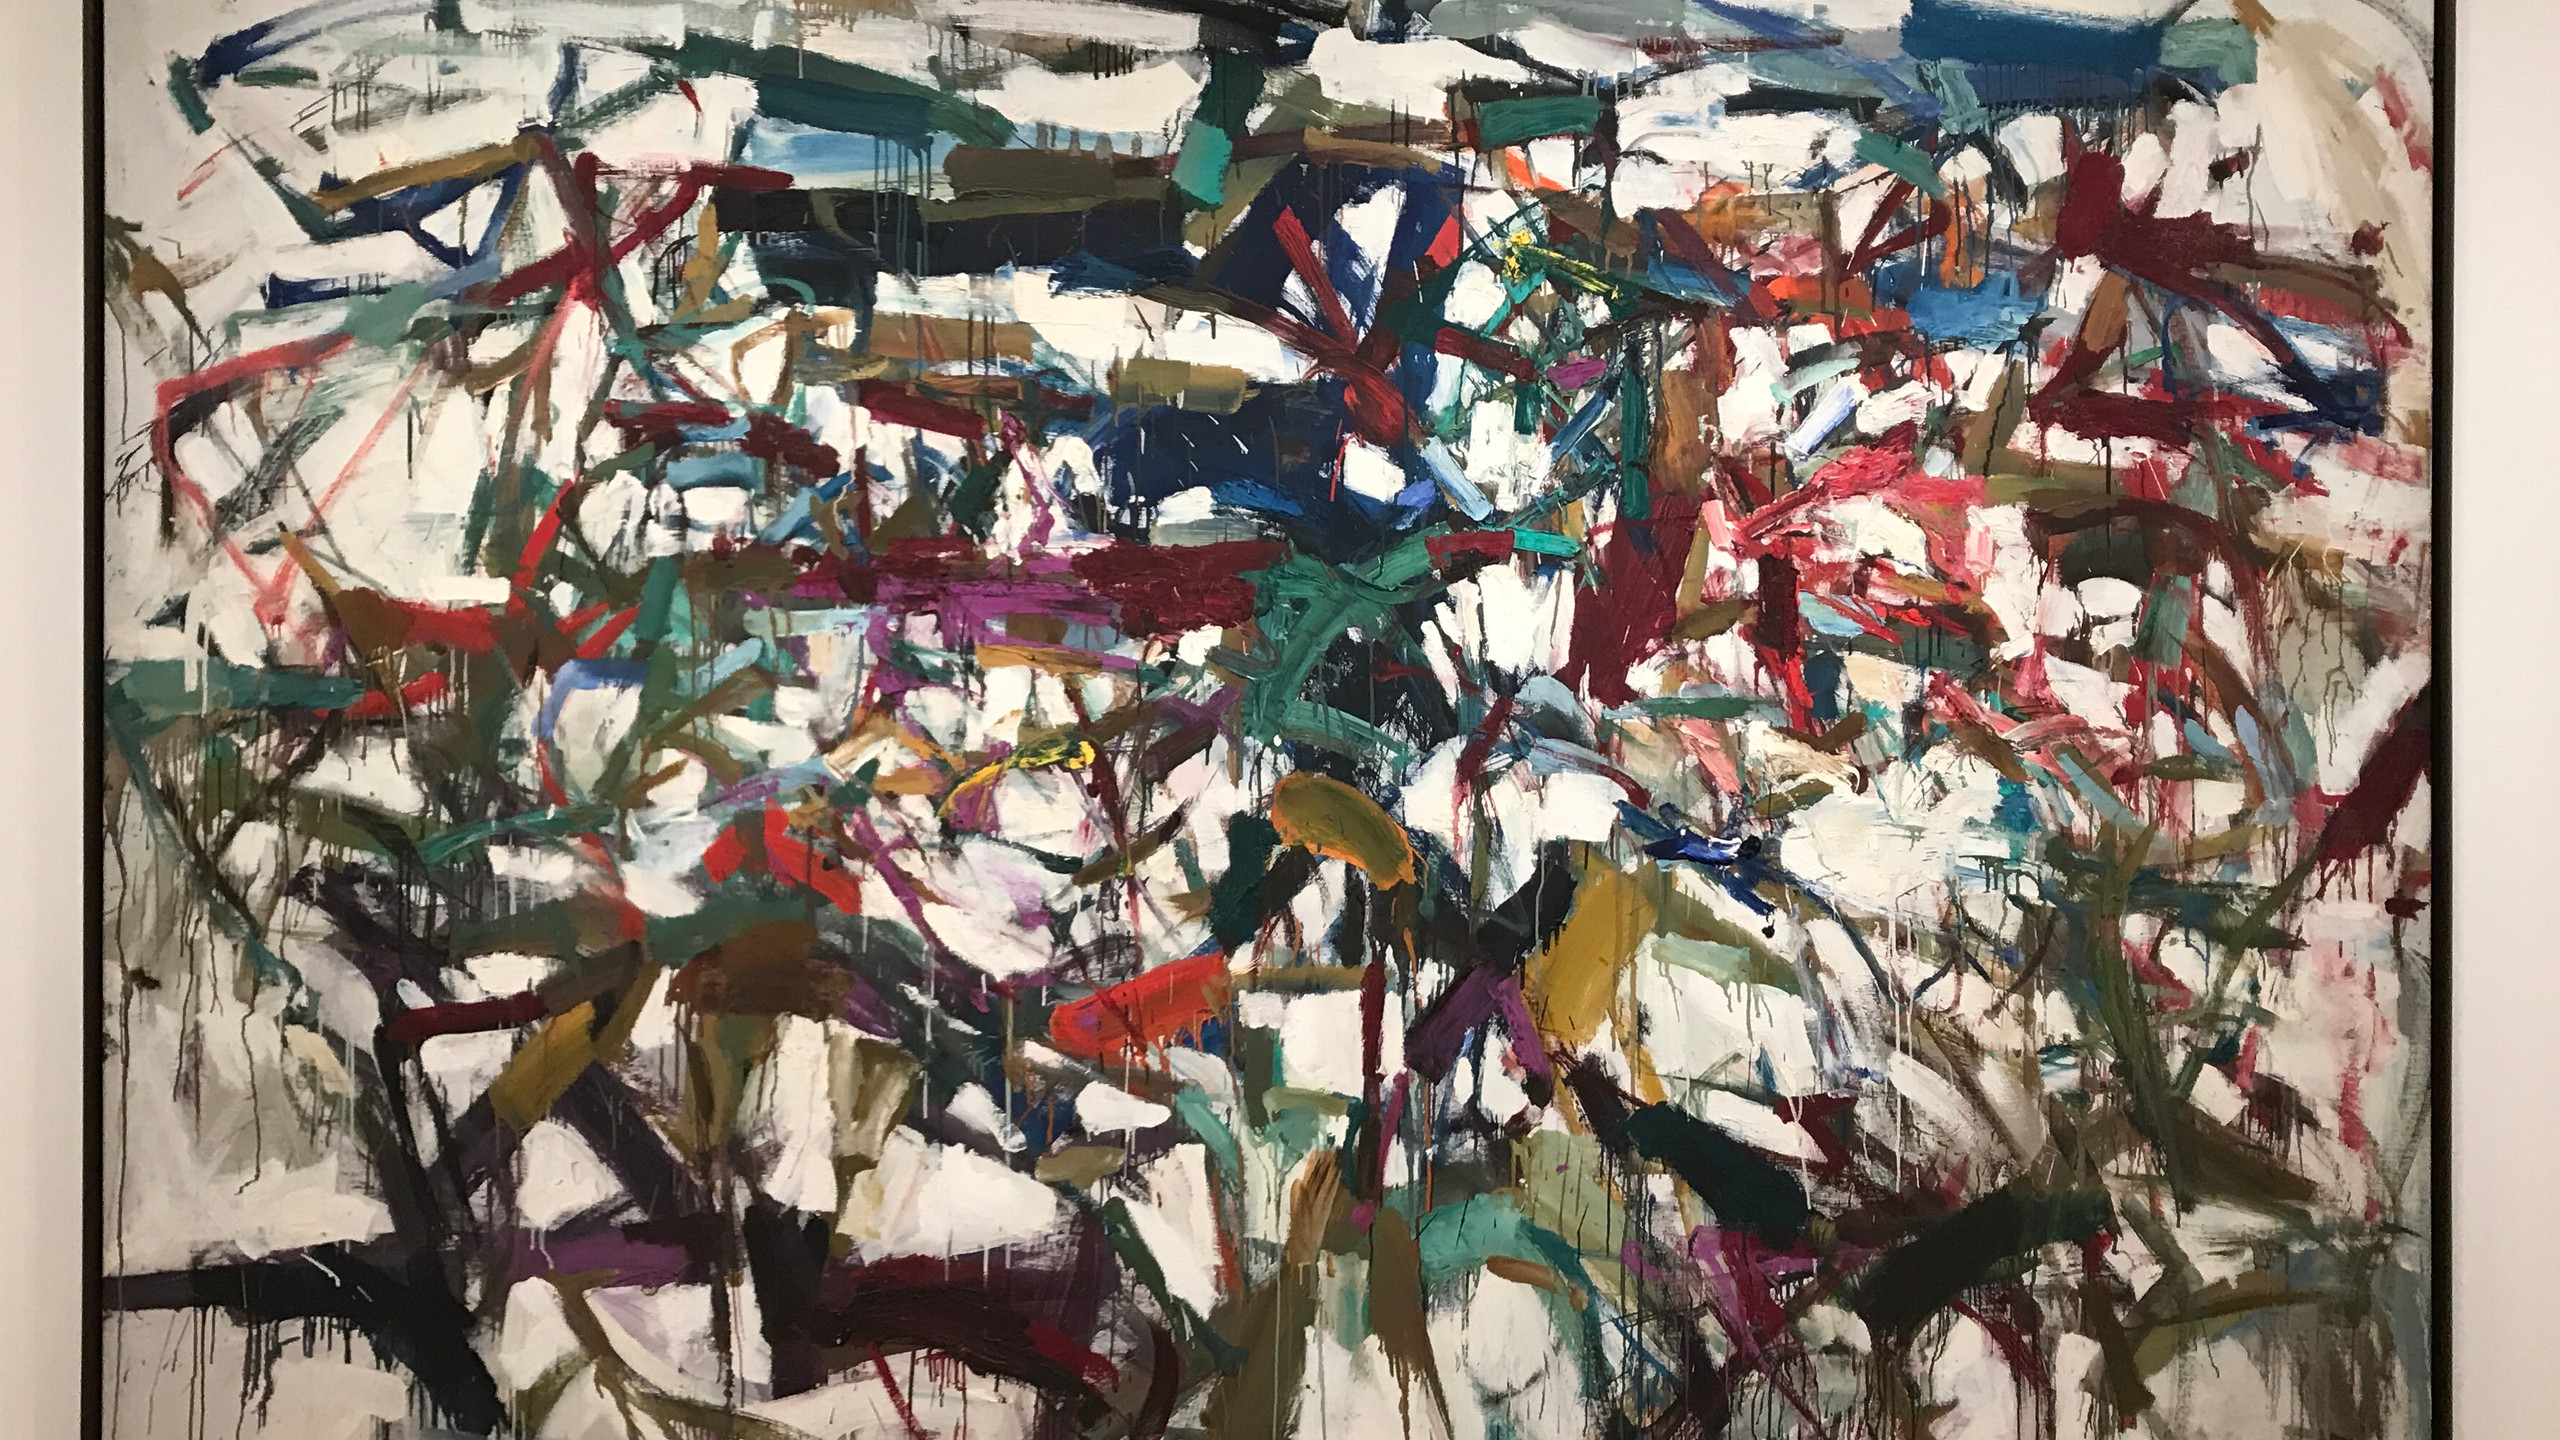 Joan Mitchell, Ladybug (1957), oil on canvas, 6' 5 7/8 x 9 in.